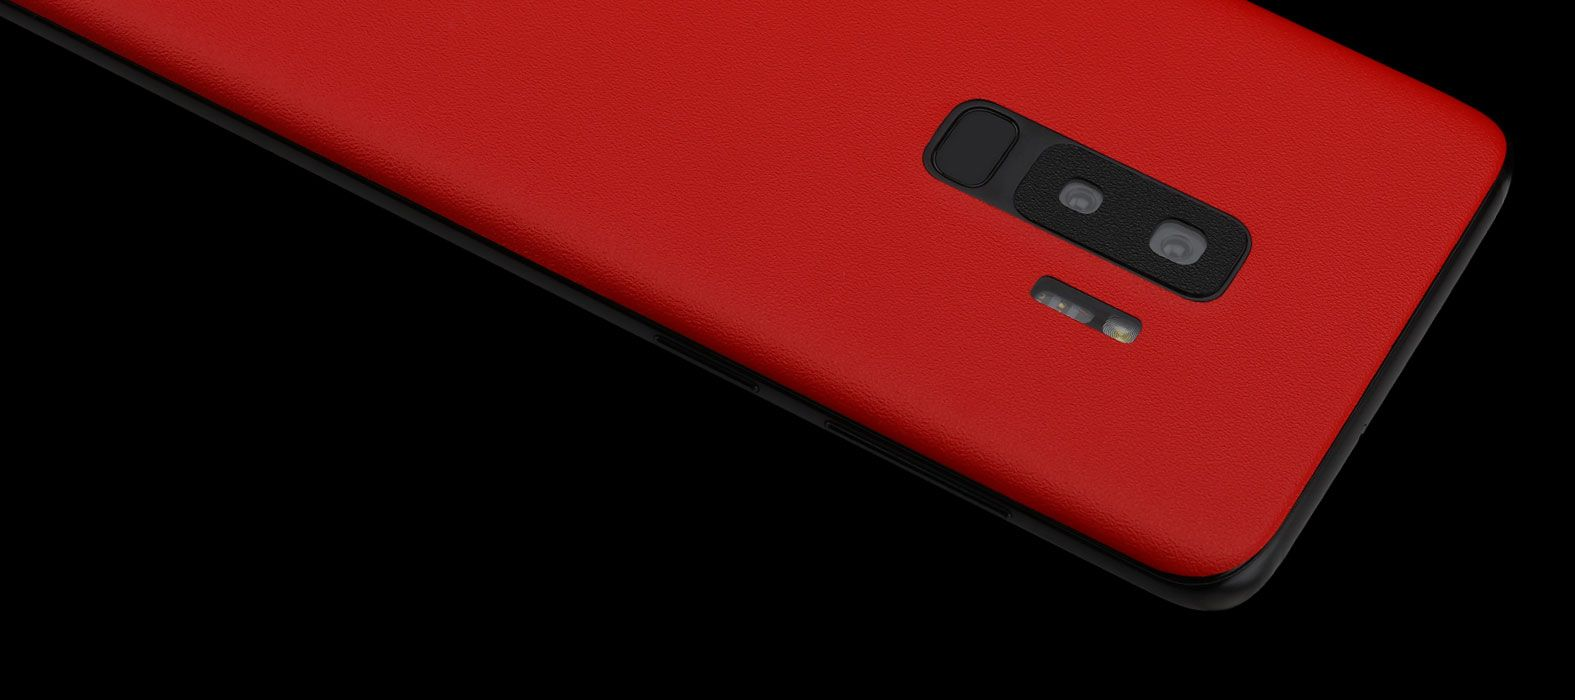 Galaxy S9 Plus Skins, Wraps - Sandstone Red